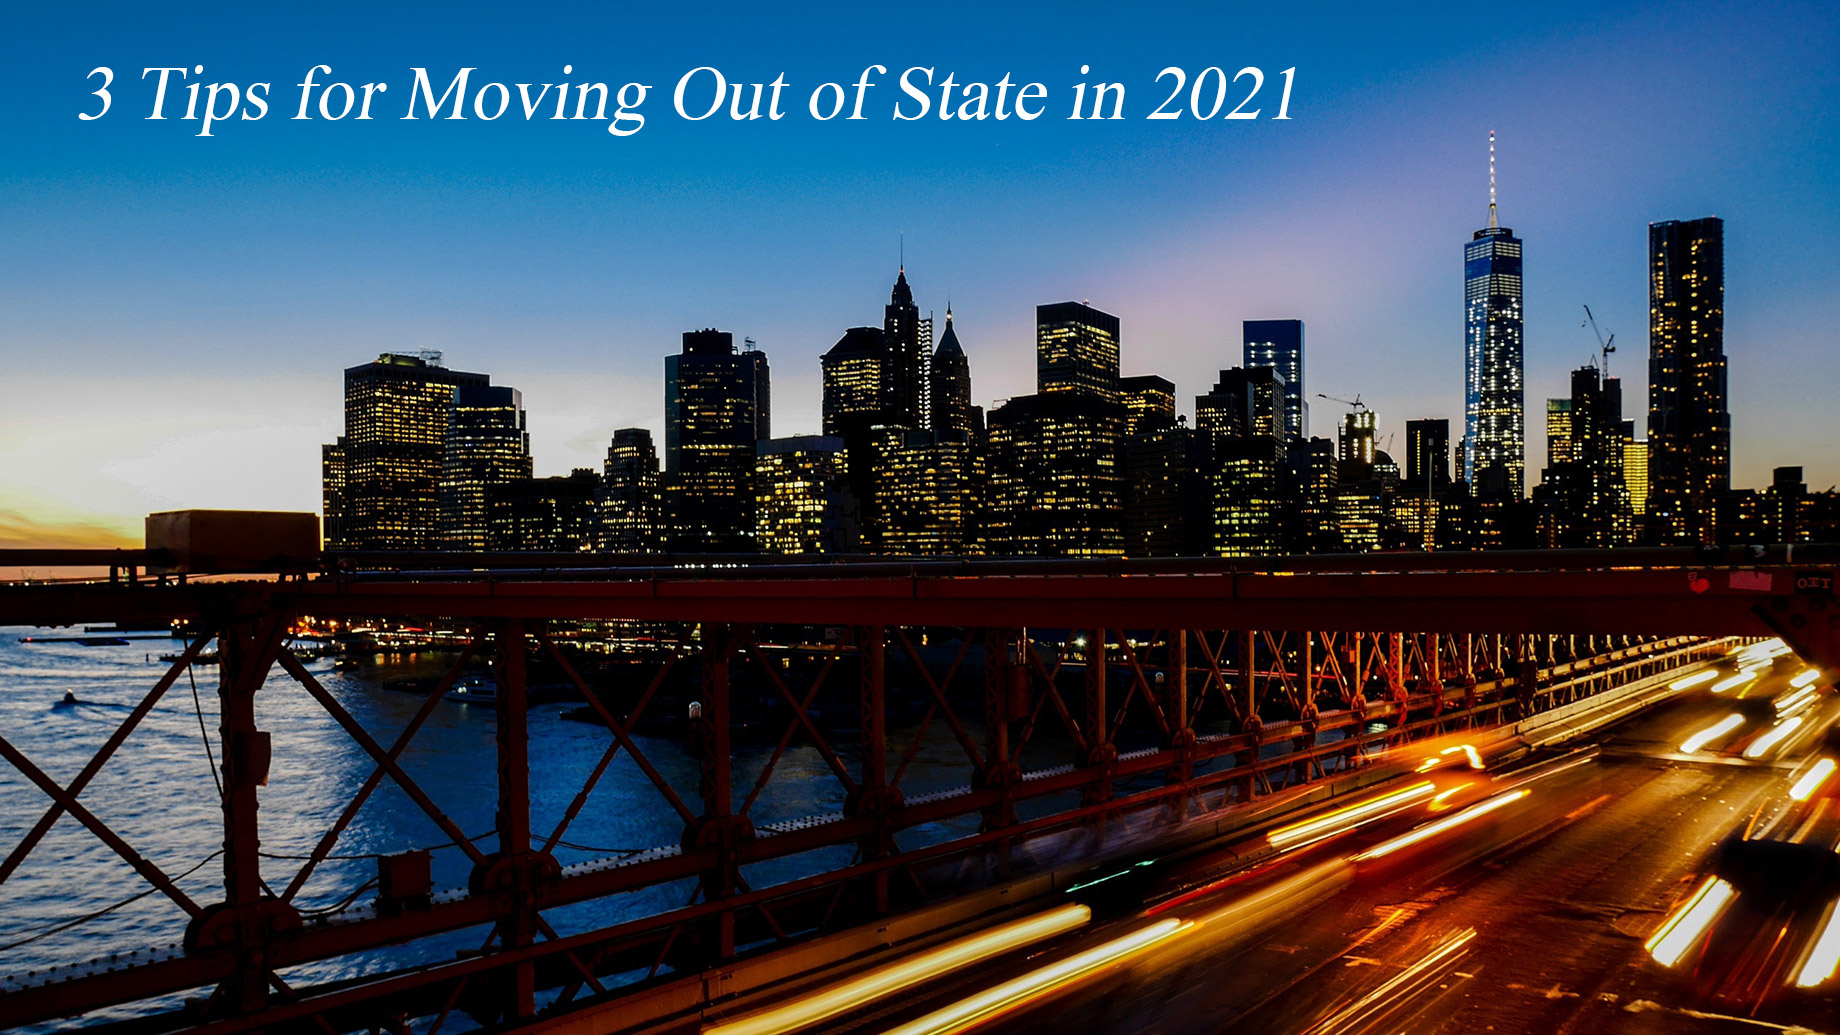 3 Tips for Moving Out of State in 2021